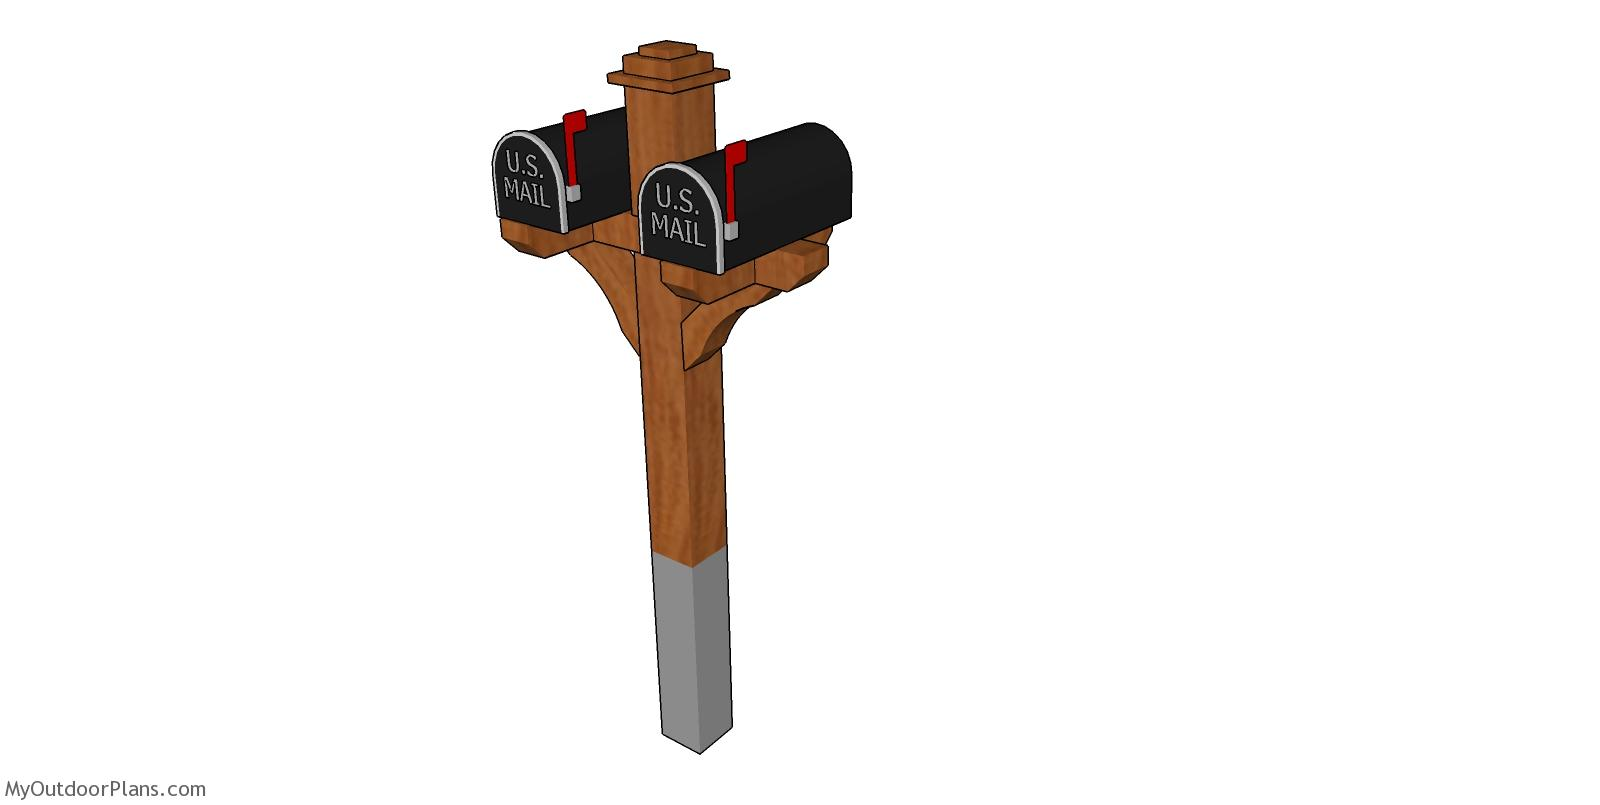 Double Mailbox Post Free Diy Plans Myoutdoorplans Free Woodworking Plans And Projects Diy Shed Wooden Playhouse Pergola Bbq